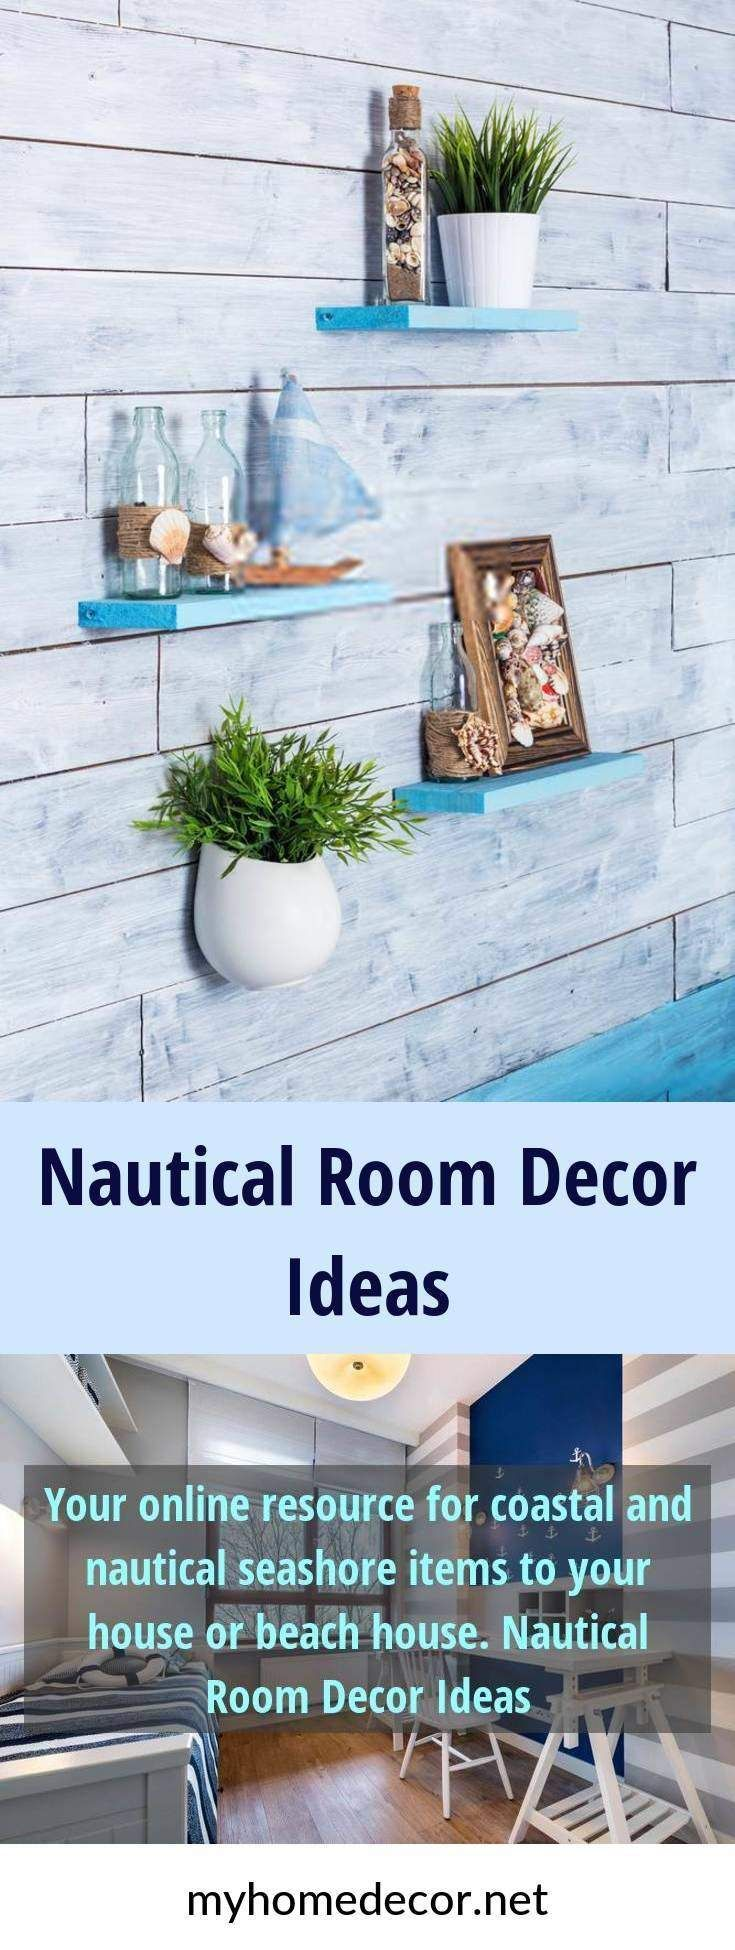 Your online resource for coastal and nautical seashore items to your